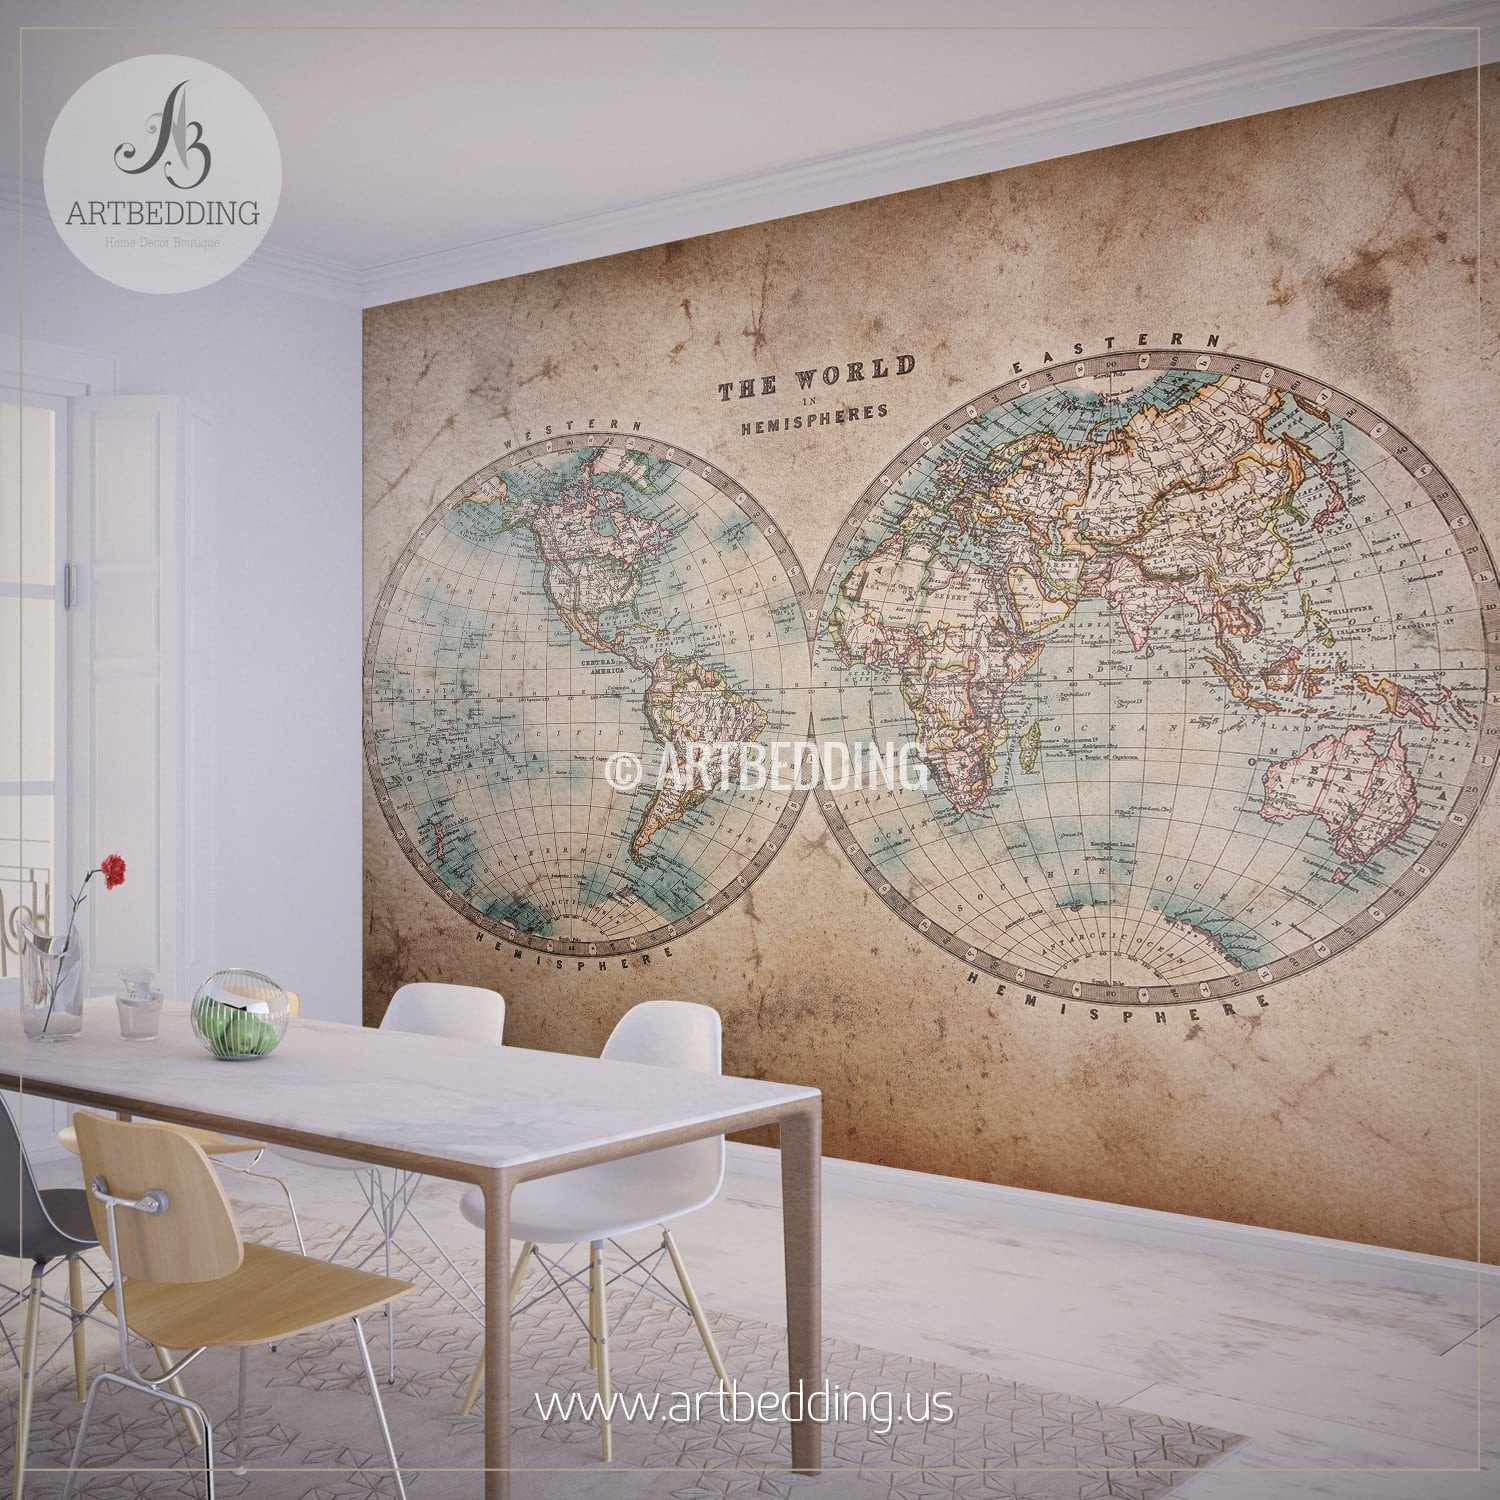 Vintage map wall mural self adhesive photo mural artbedding genuine stained world map from mid 1800s hemisphere wall mural self adhesive peel stick gumiabroncs Image collections